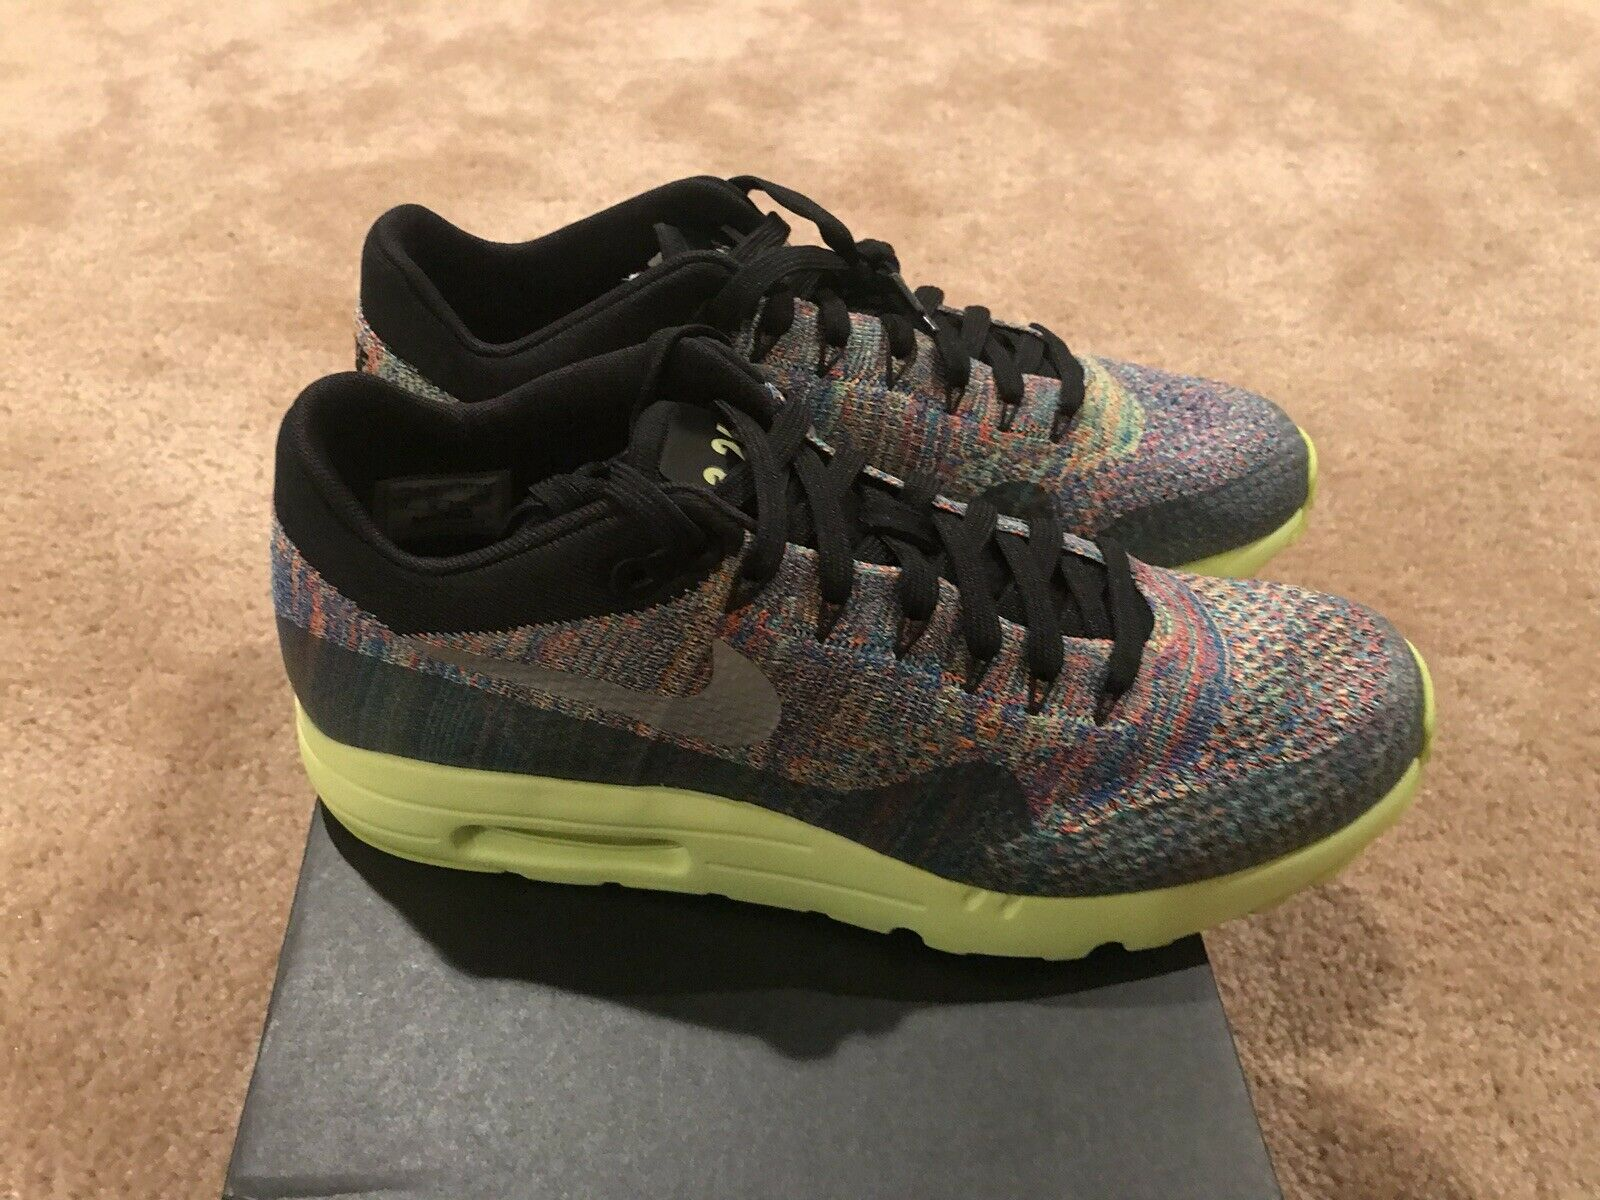 low priced d8529 94b0d ... Nike Air Max 1 Ultra Ultra Ultra Flyknit AIR MAX DAY NikeID Size 11  9c2704 ...